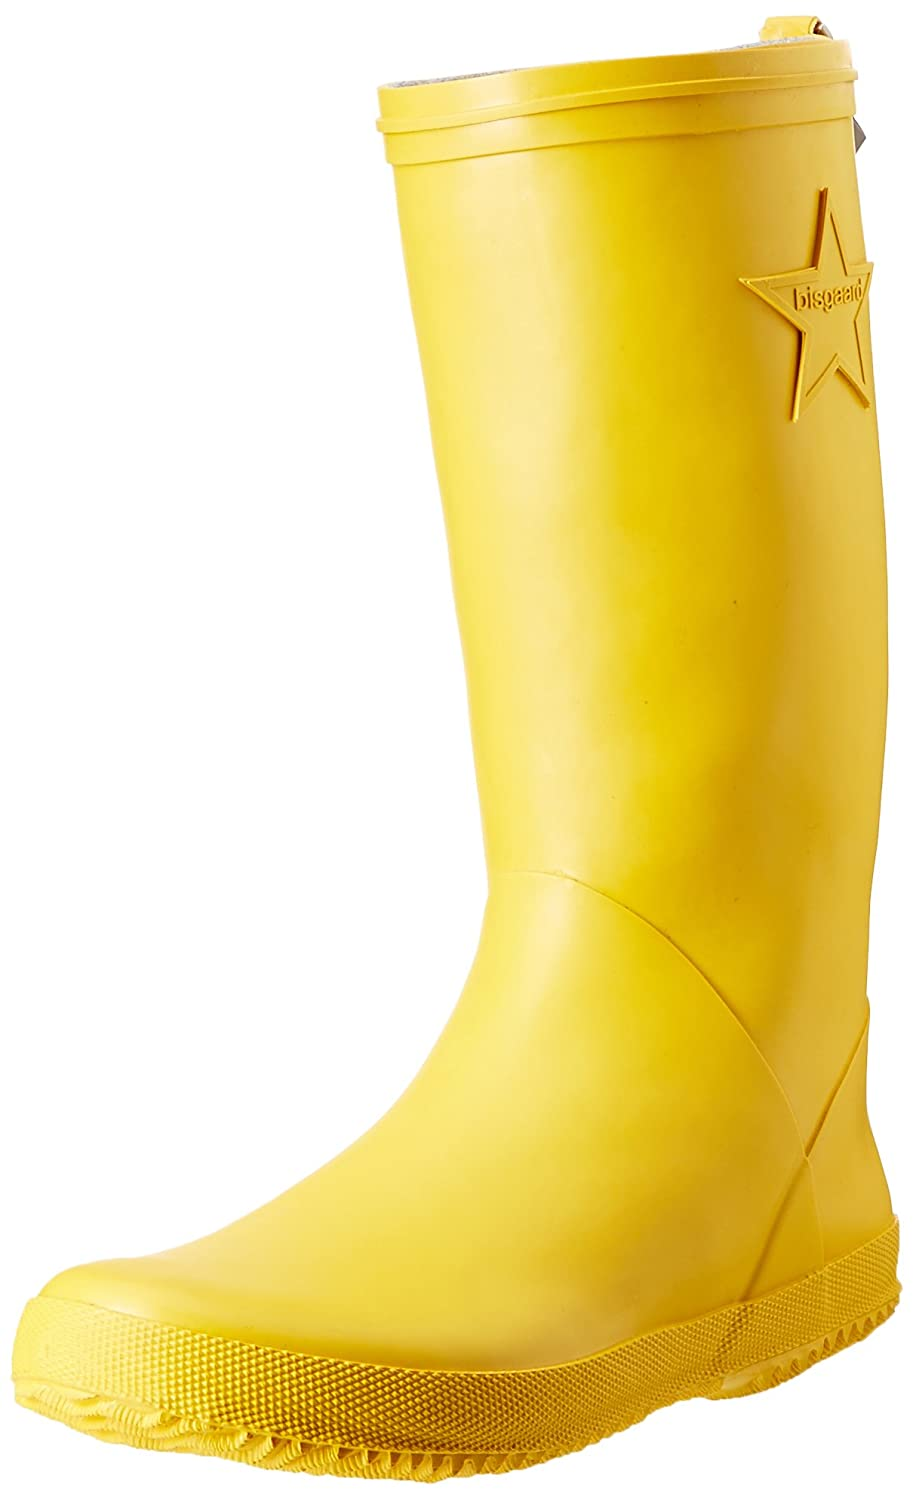 Bisgaard Unisex-Kinder Rubber Boot Star Gummistiefel, Gelb (80 Yellow), 26 EU